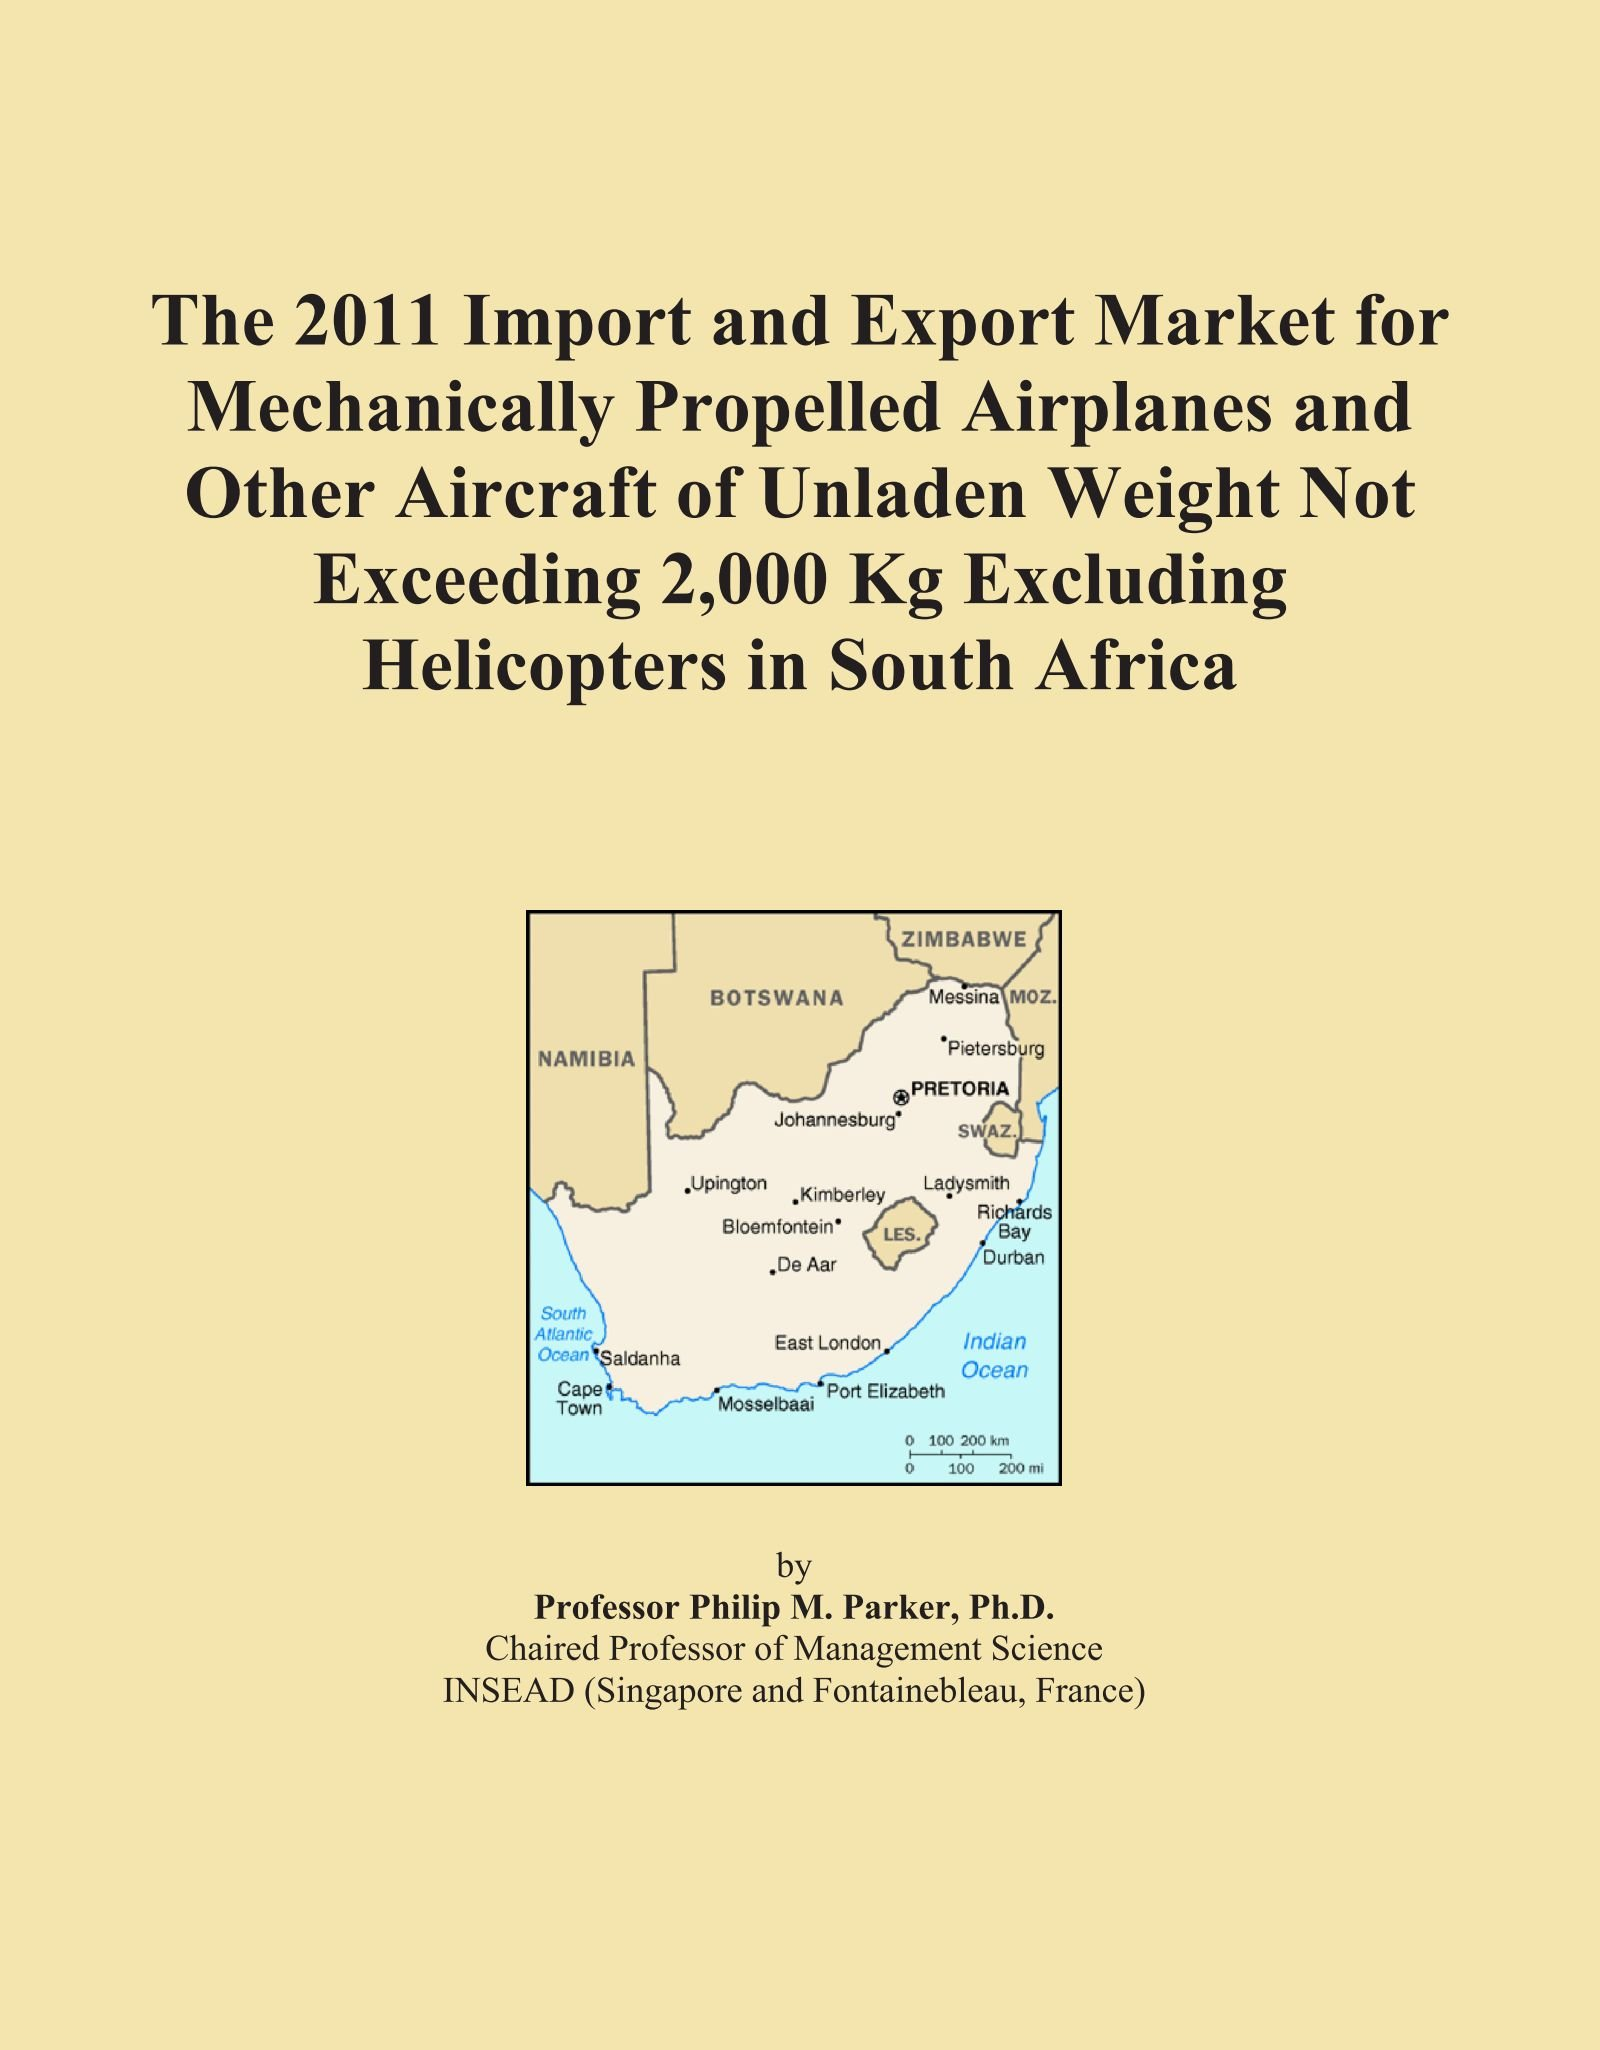 Download The 2011 Import and Export Market for Mechanically Propelled Airplanes and Other Aircraft of Unladen Weight Not Exceeding 2,000 Kg Excluding Helicopters in South Africa PDF